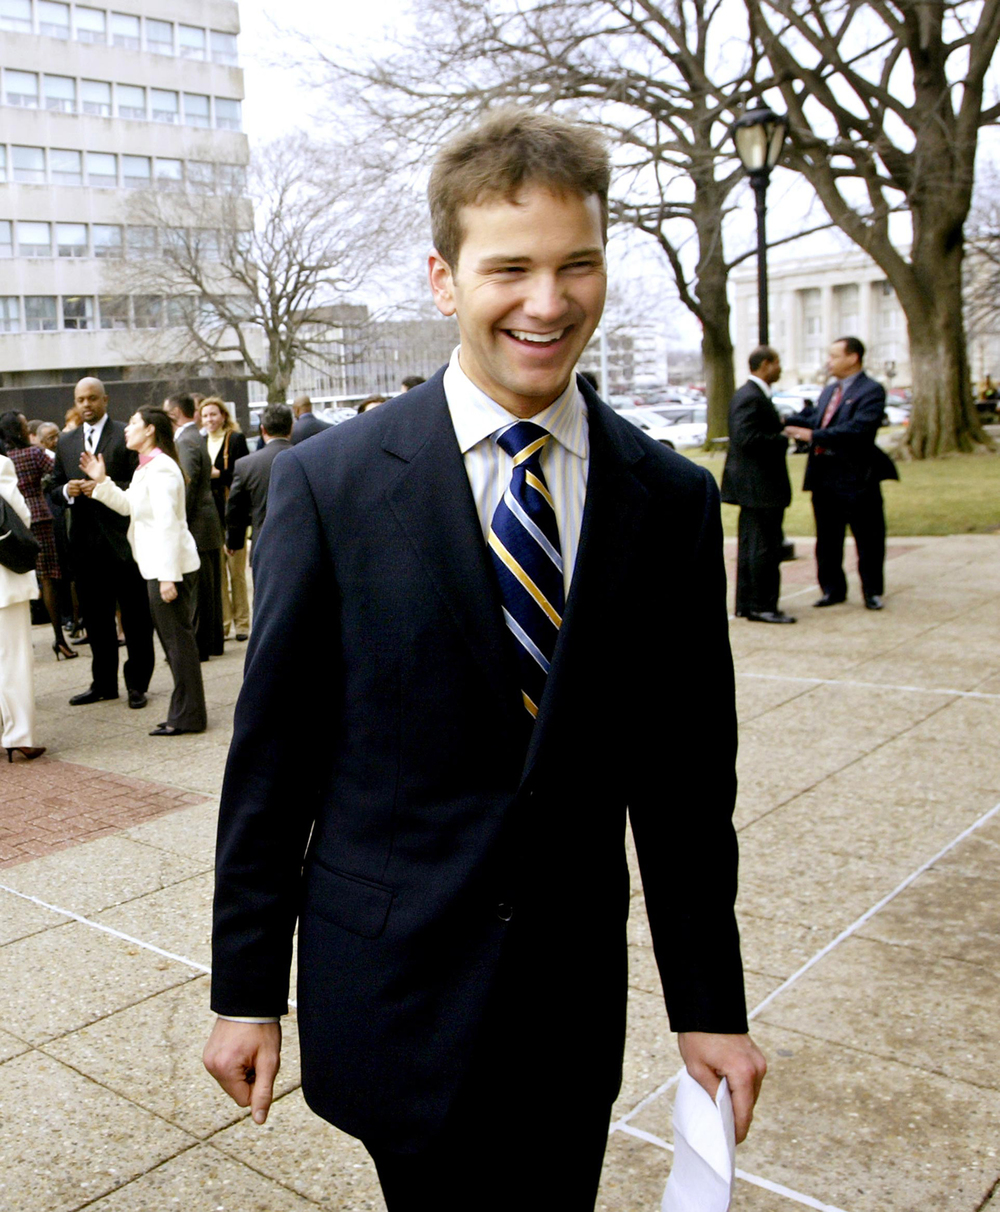 State Rep. Aaron Schock, R-Peoria, walks into the Capitol building in January 2005 for his inauguration into the Illinois House of Representatives. File/The State Journal-Register